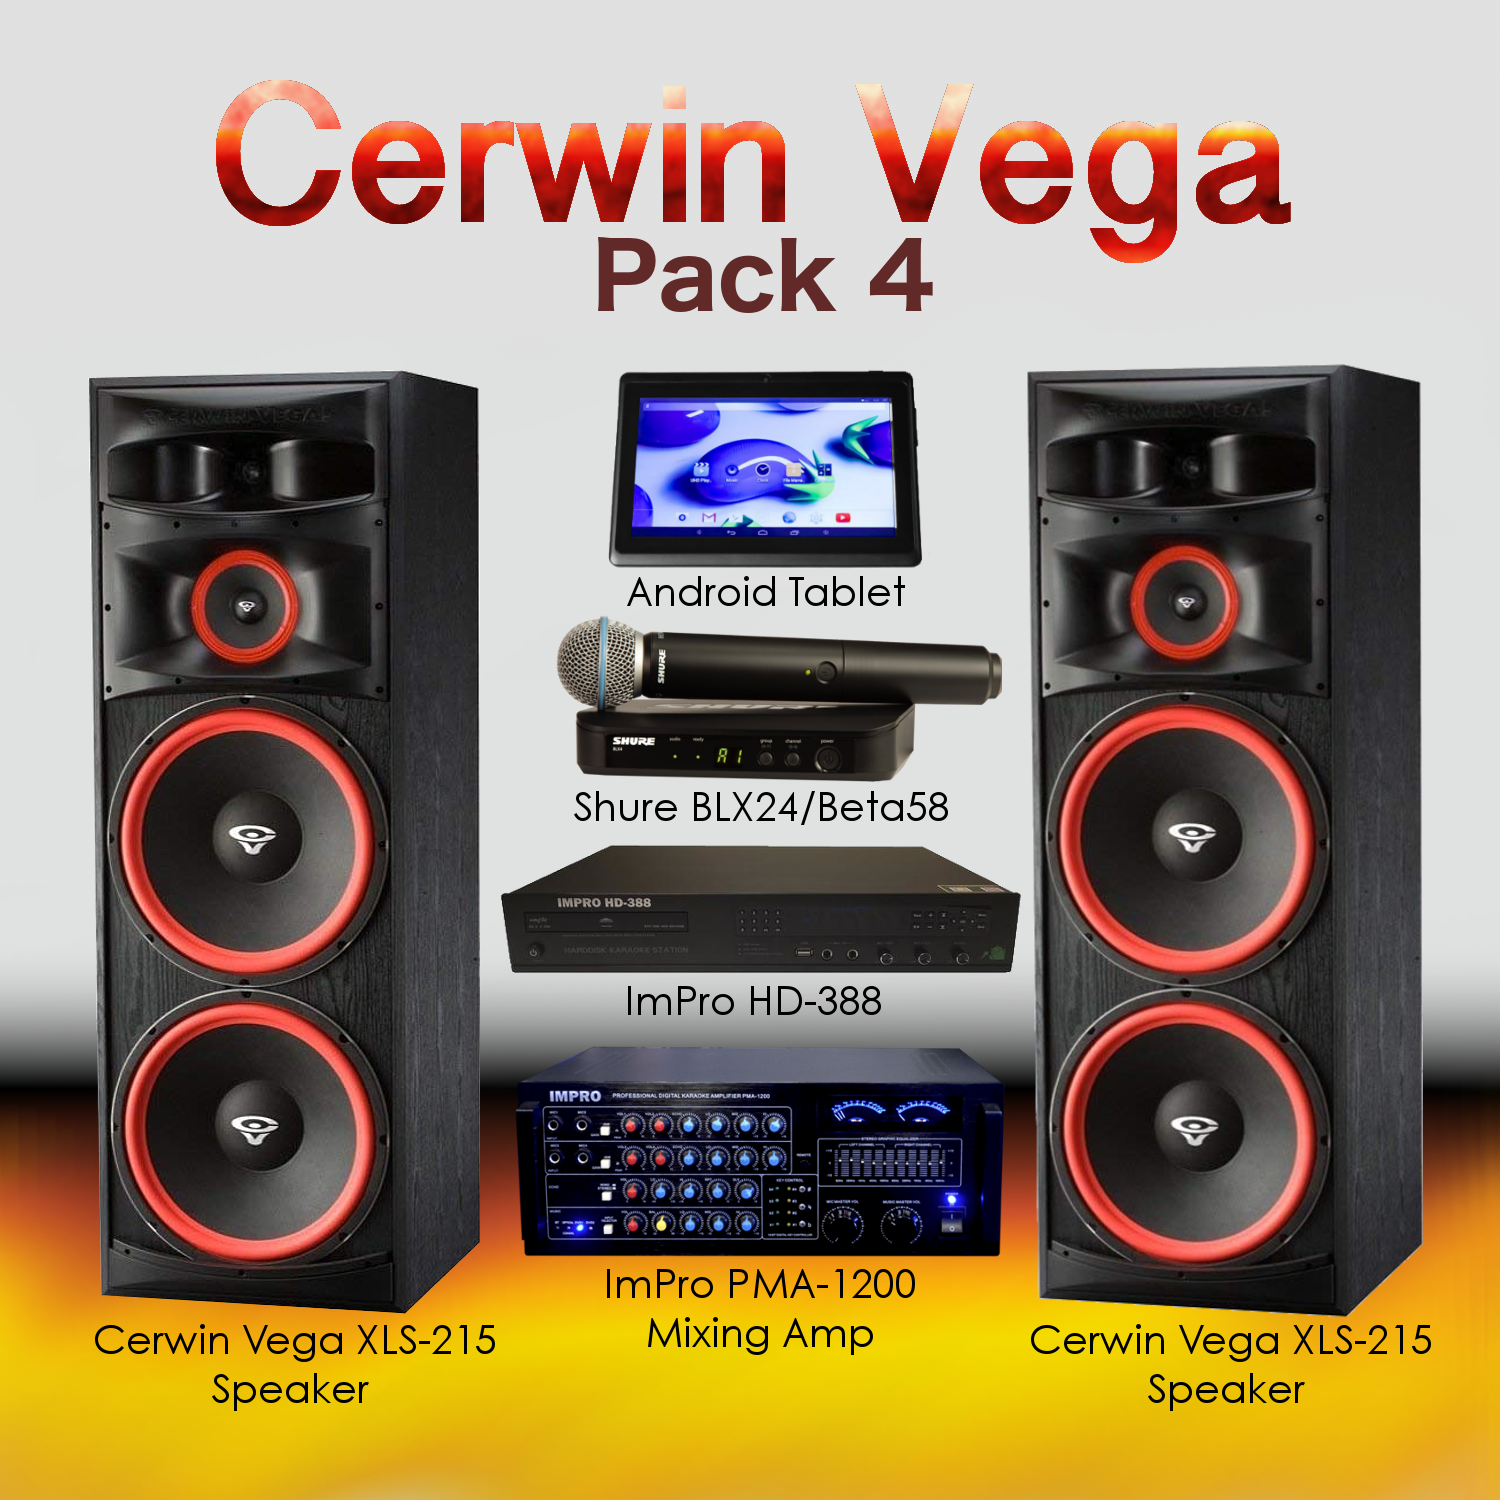 Cerwin Vega Pack #4: Combination of HD-388(5TB), Android Tablet, PMA-1200, XLS-215, BLX24/Beta58